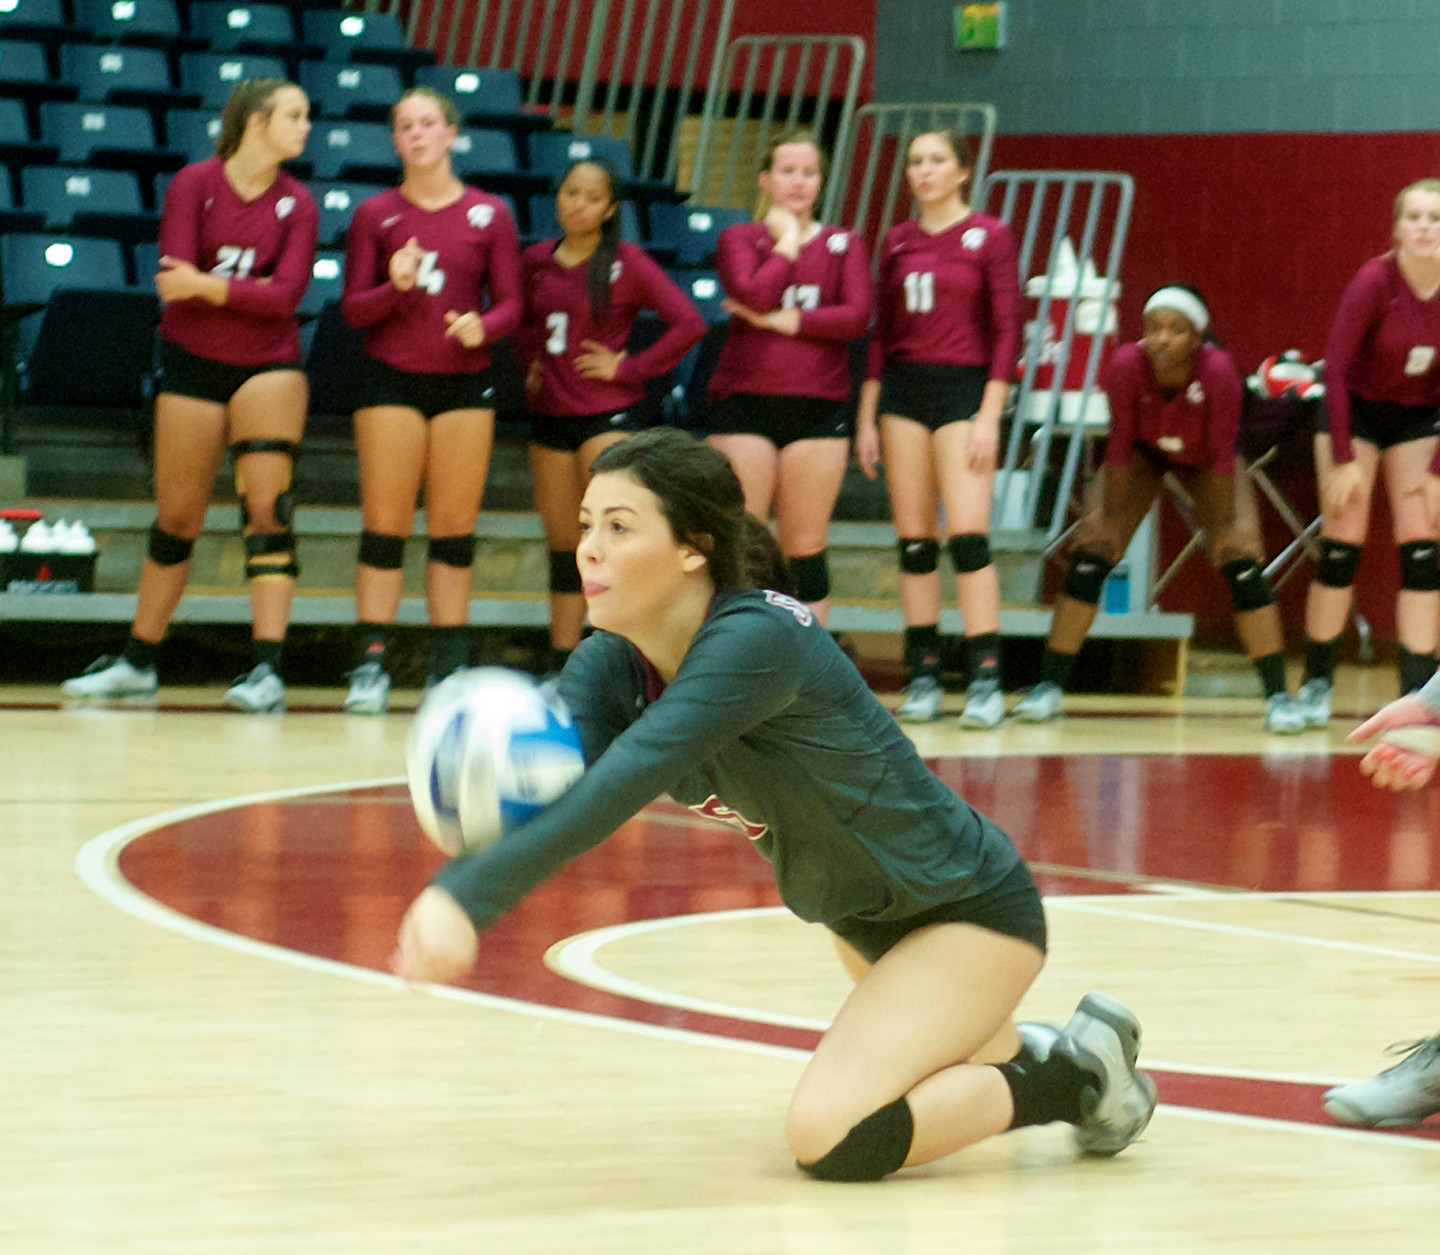 Defensive specialist Renea Bertheaud keeps the ball in play for CACC-Coastal.